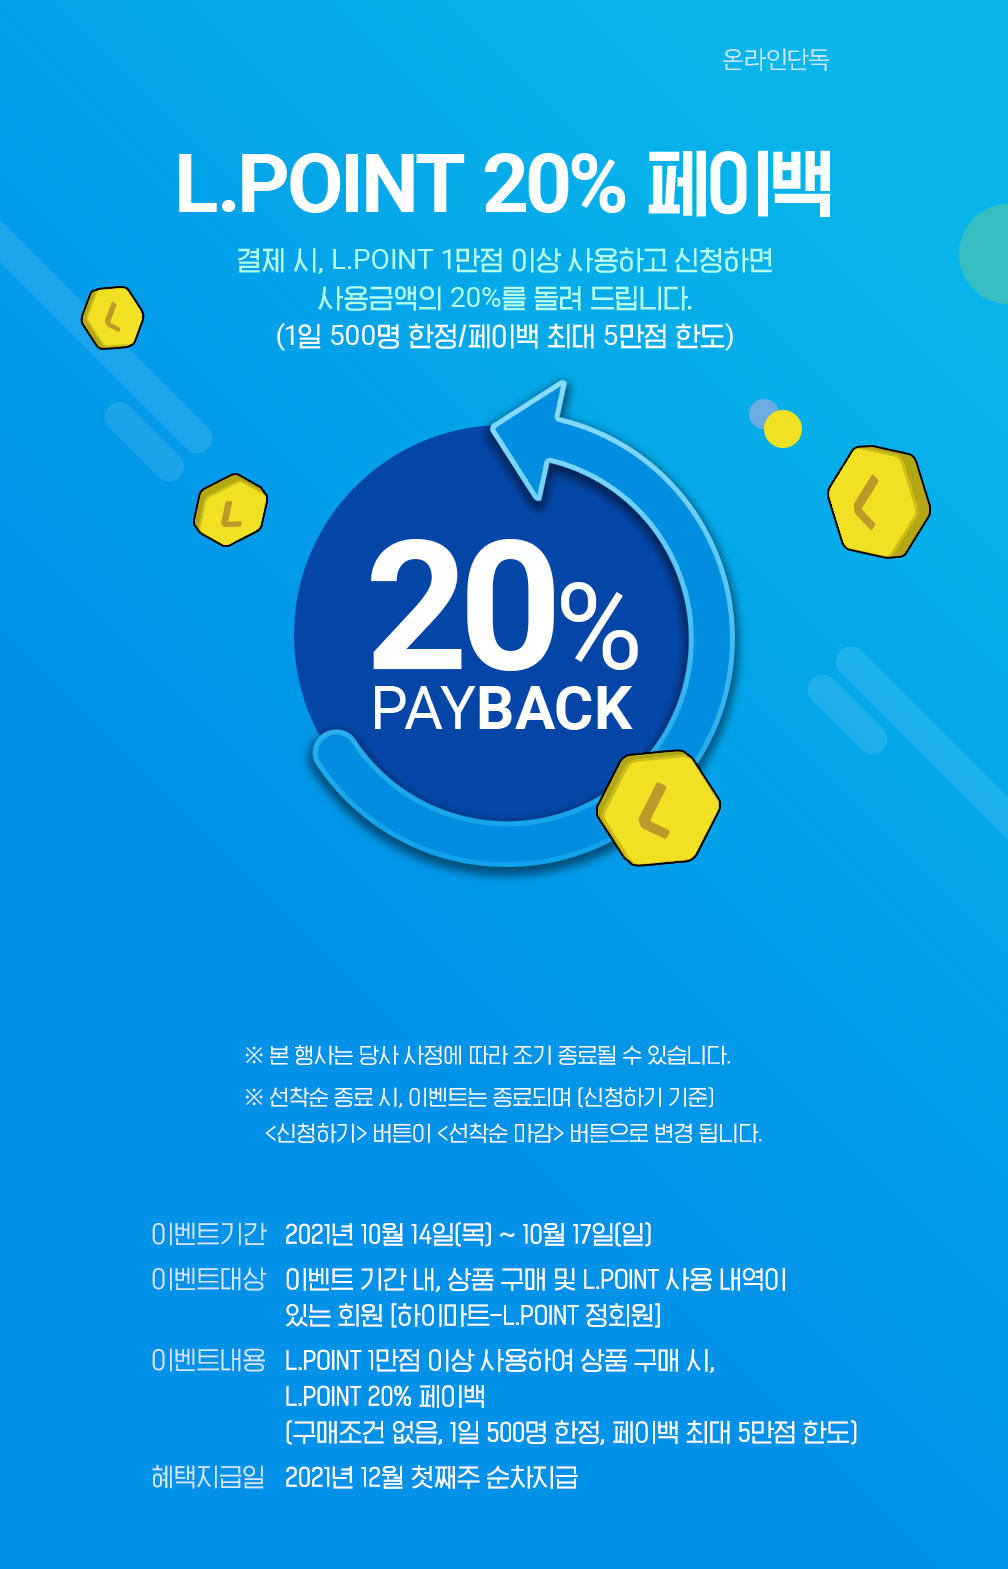 L.POINT 20% 페이백